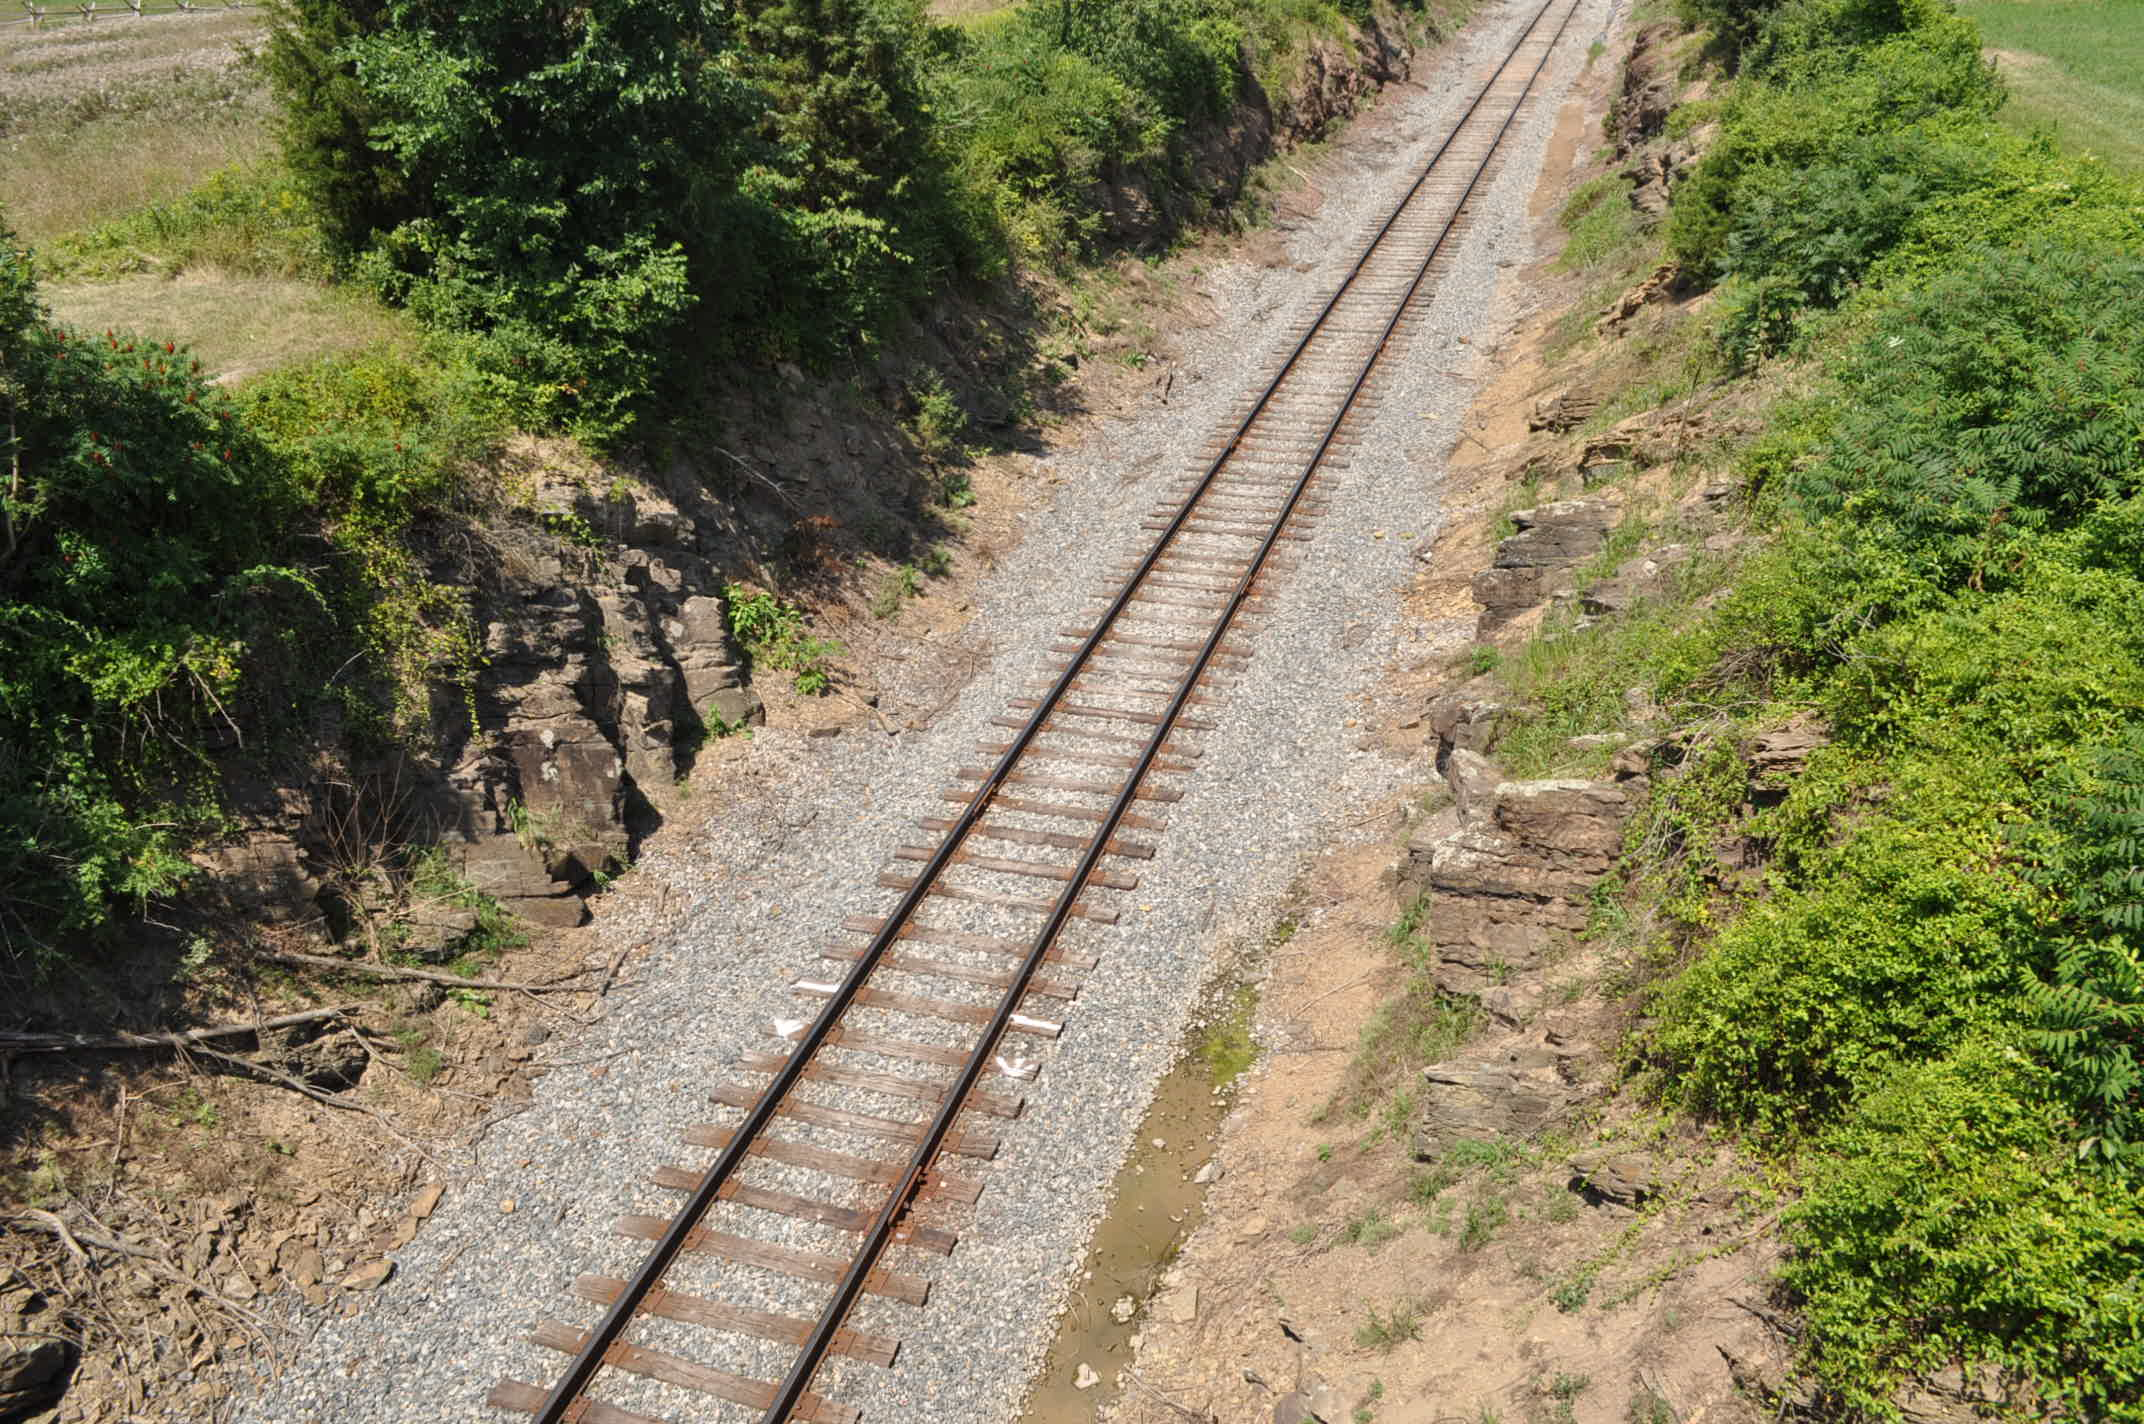 McPherson Ridge Railway Cut